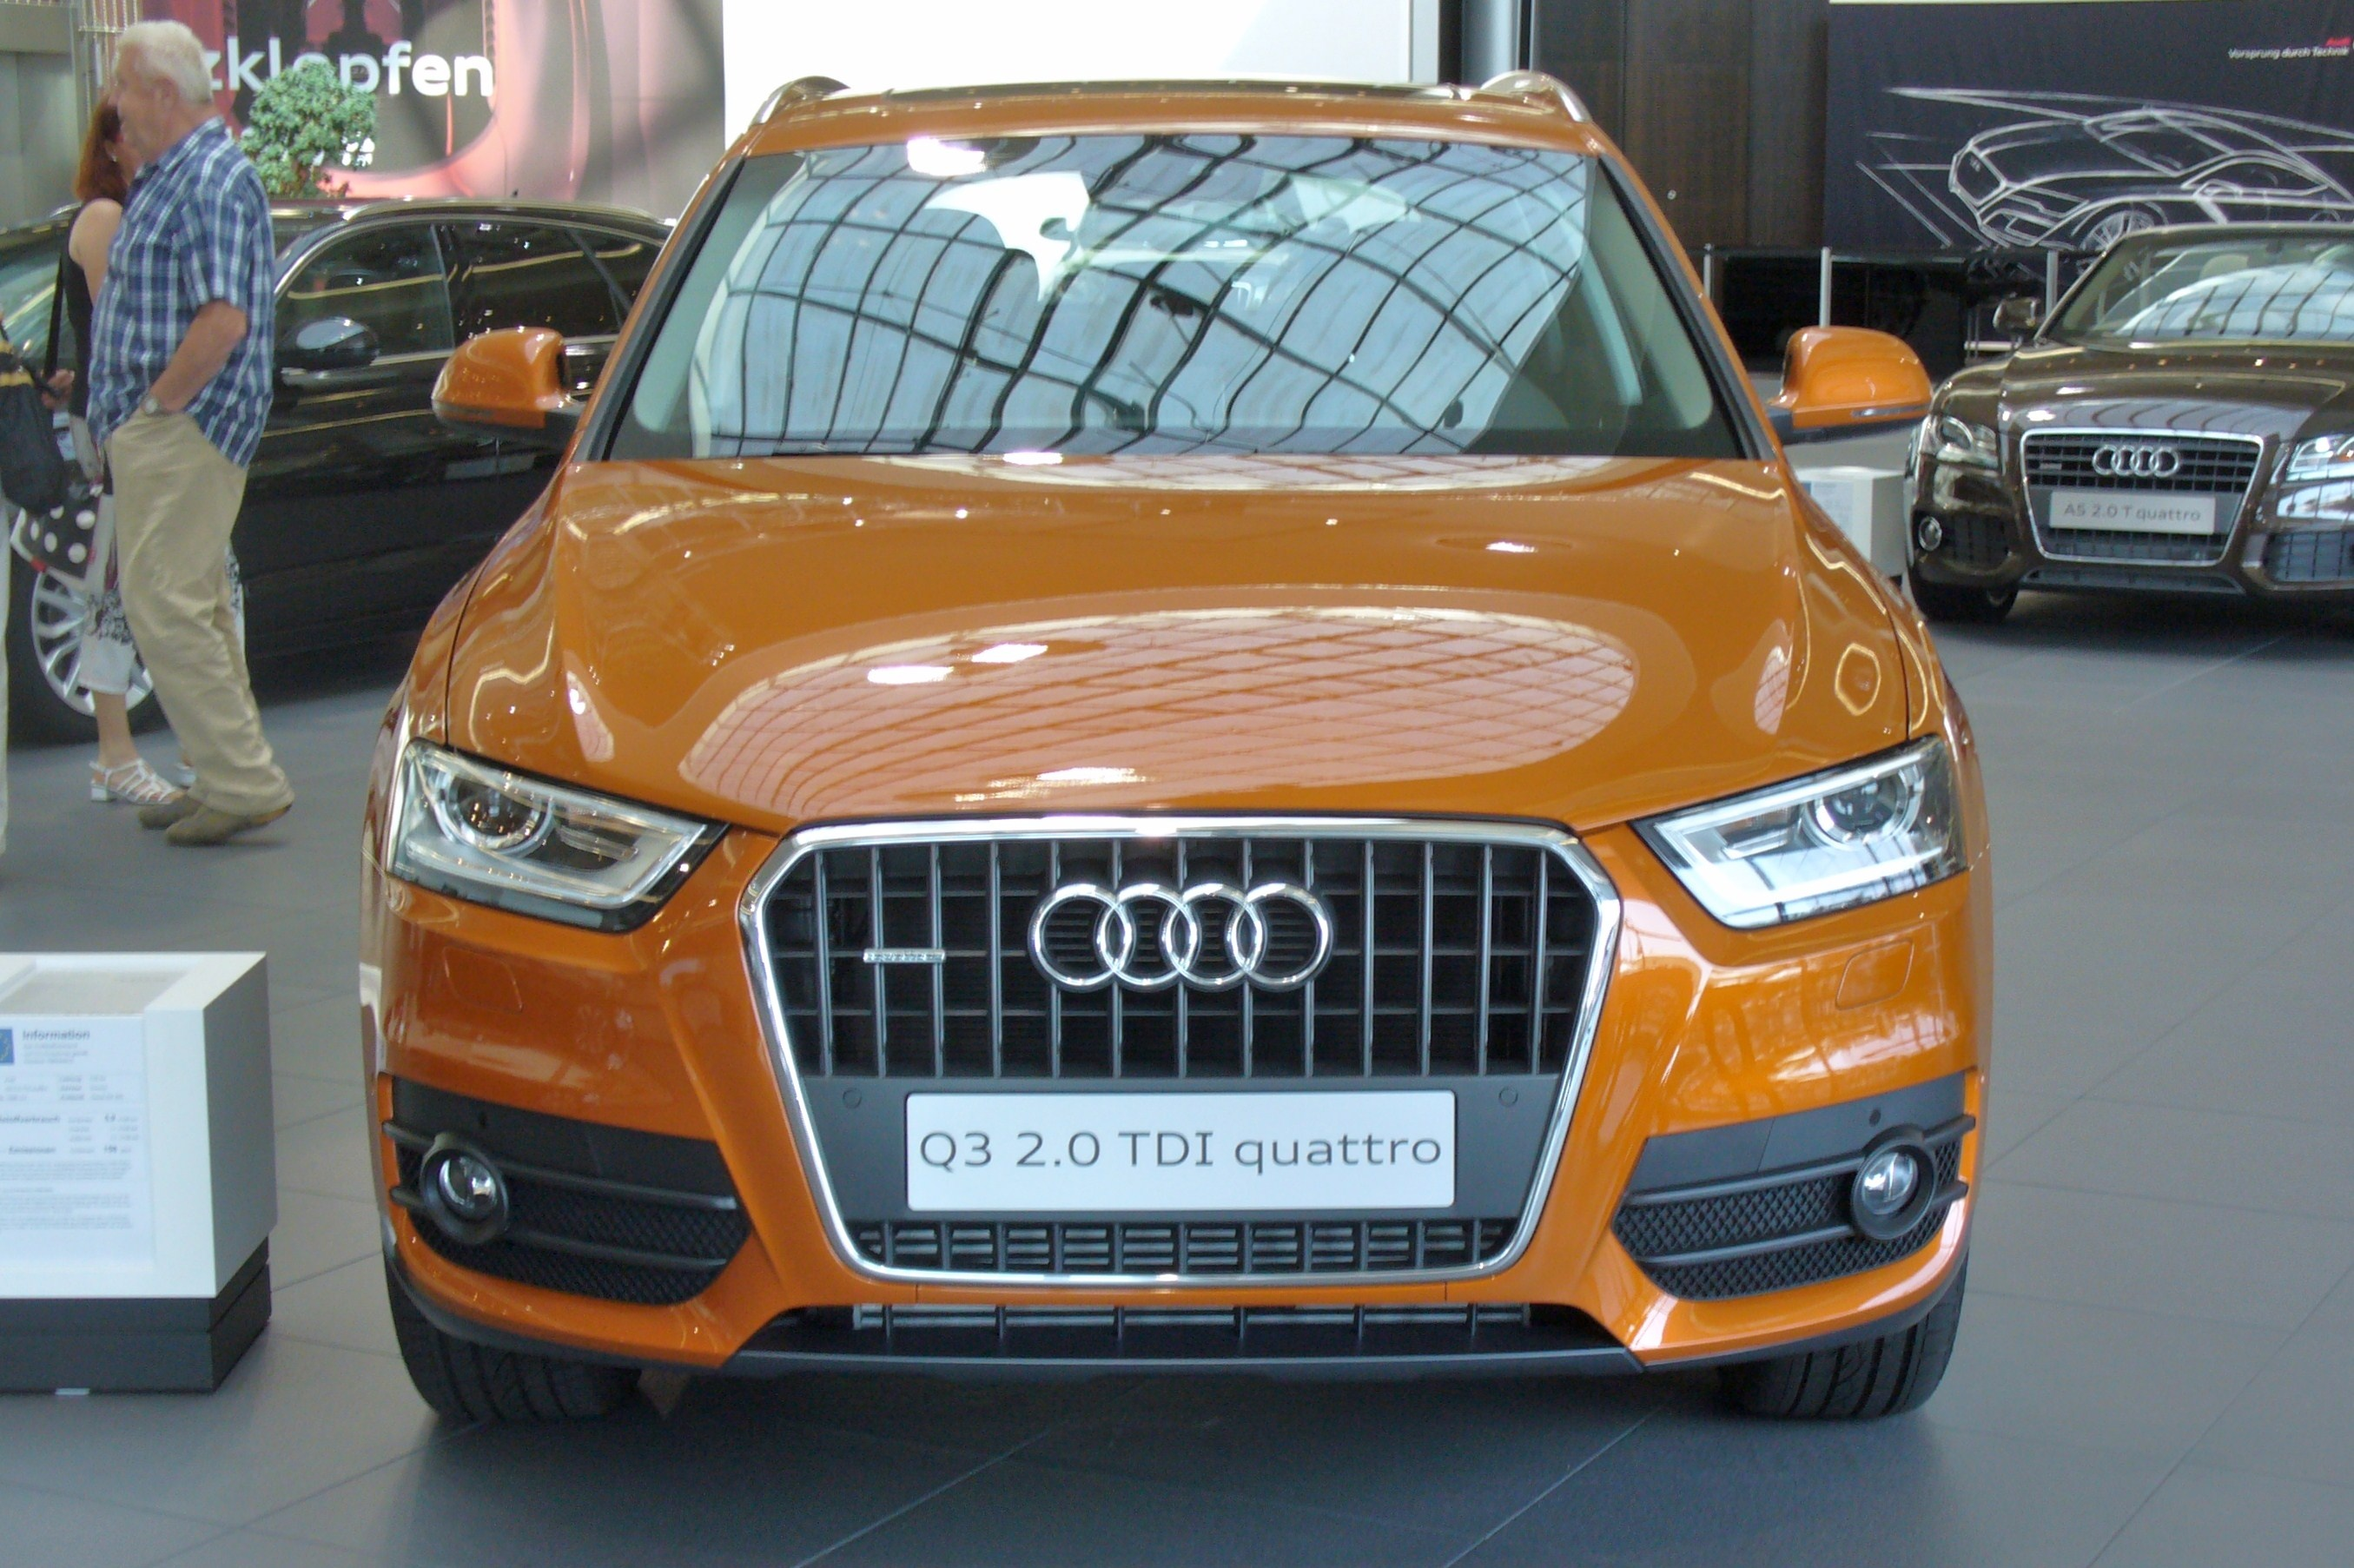 Audi Q3 Modified Fresh Fileaudi Q3 2 0 Tdi Quattro S Tronic Samoaorange Front Jpg-2720 Of Best Of Audi Q3 Modified